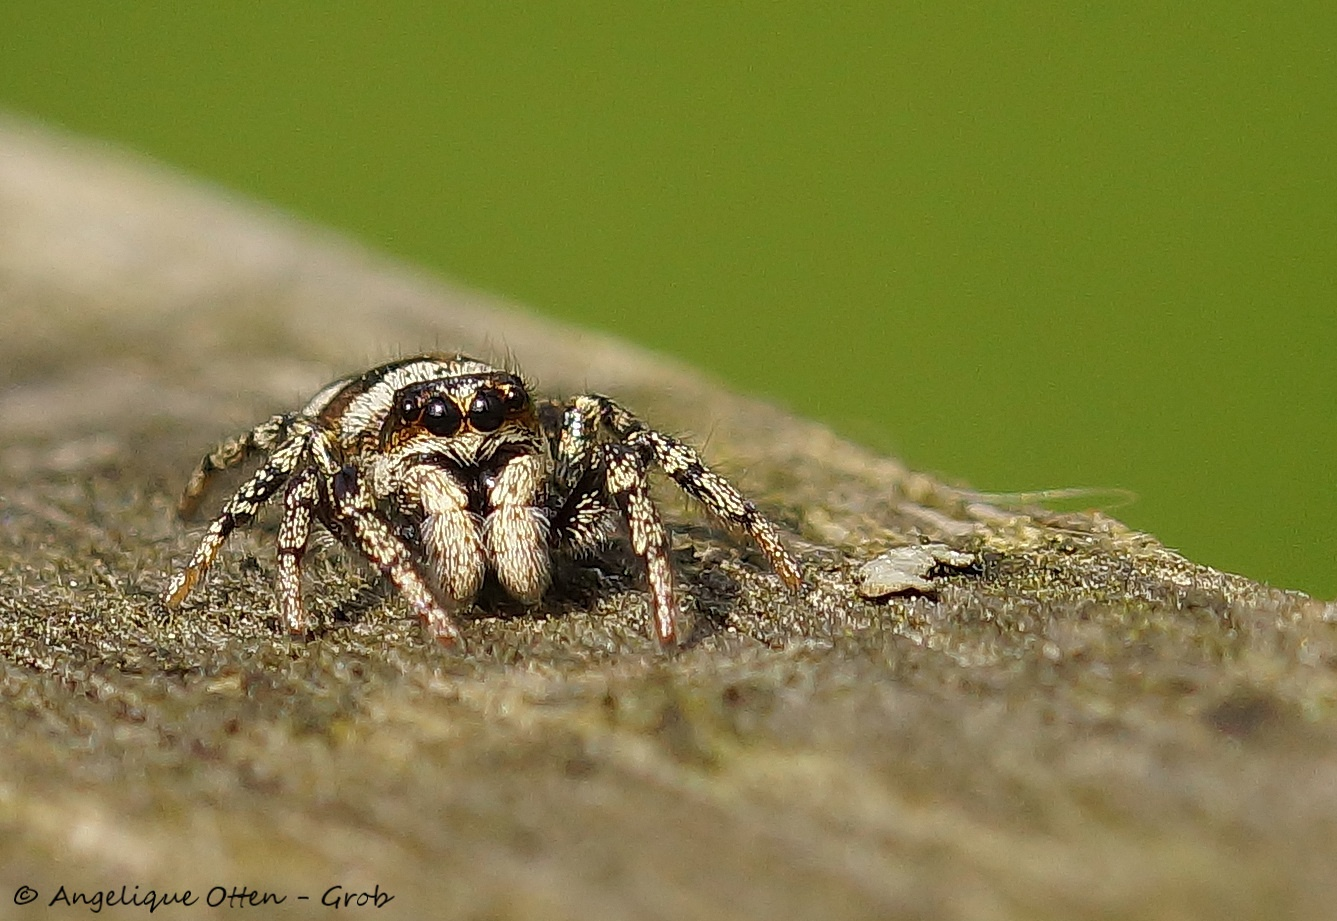 Jumping spider by Angelique Otten - Grob